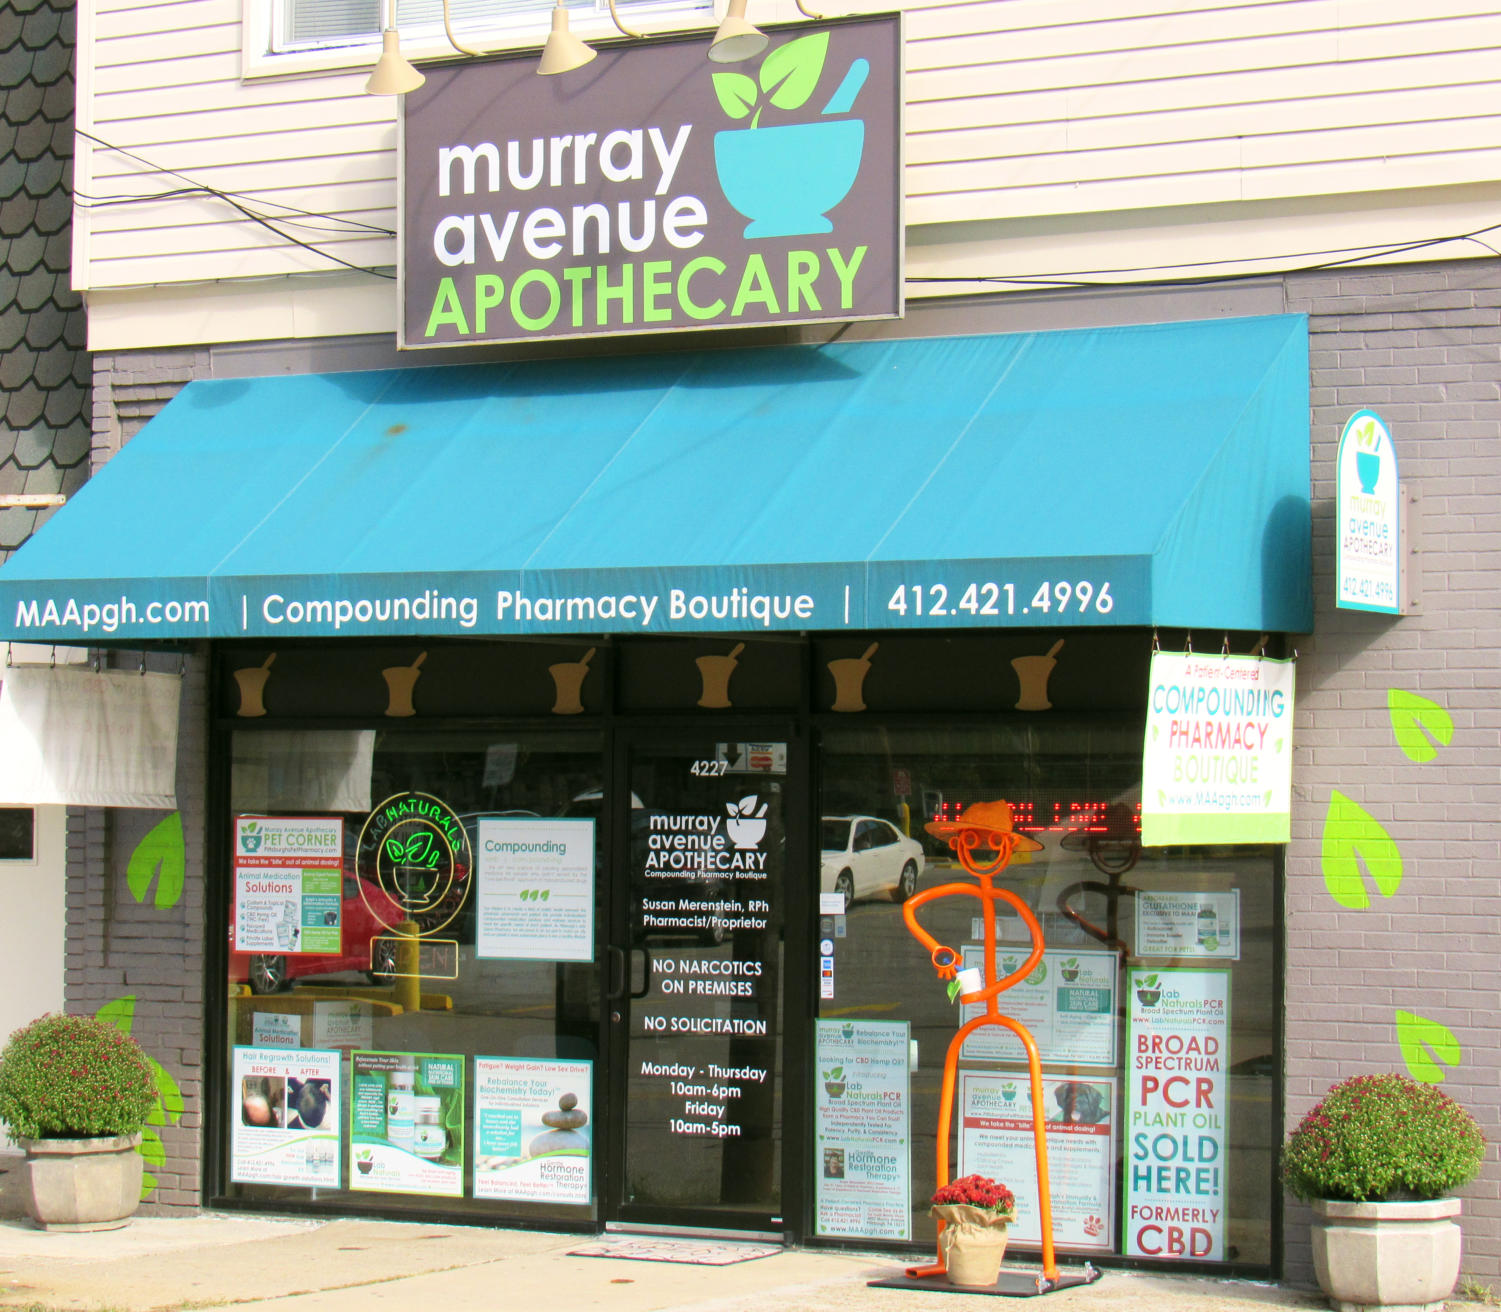 Murray Avenue Apothecary is one of Pittsburgh's foremost providers of CBD products.